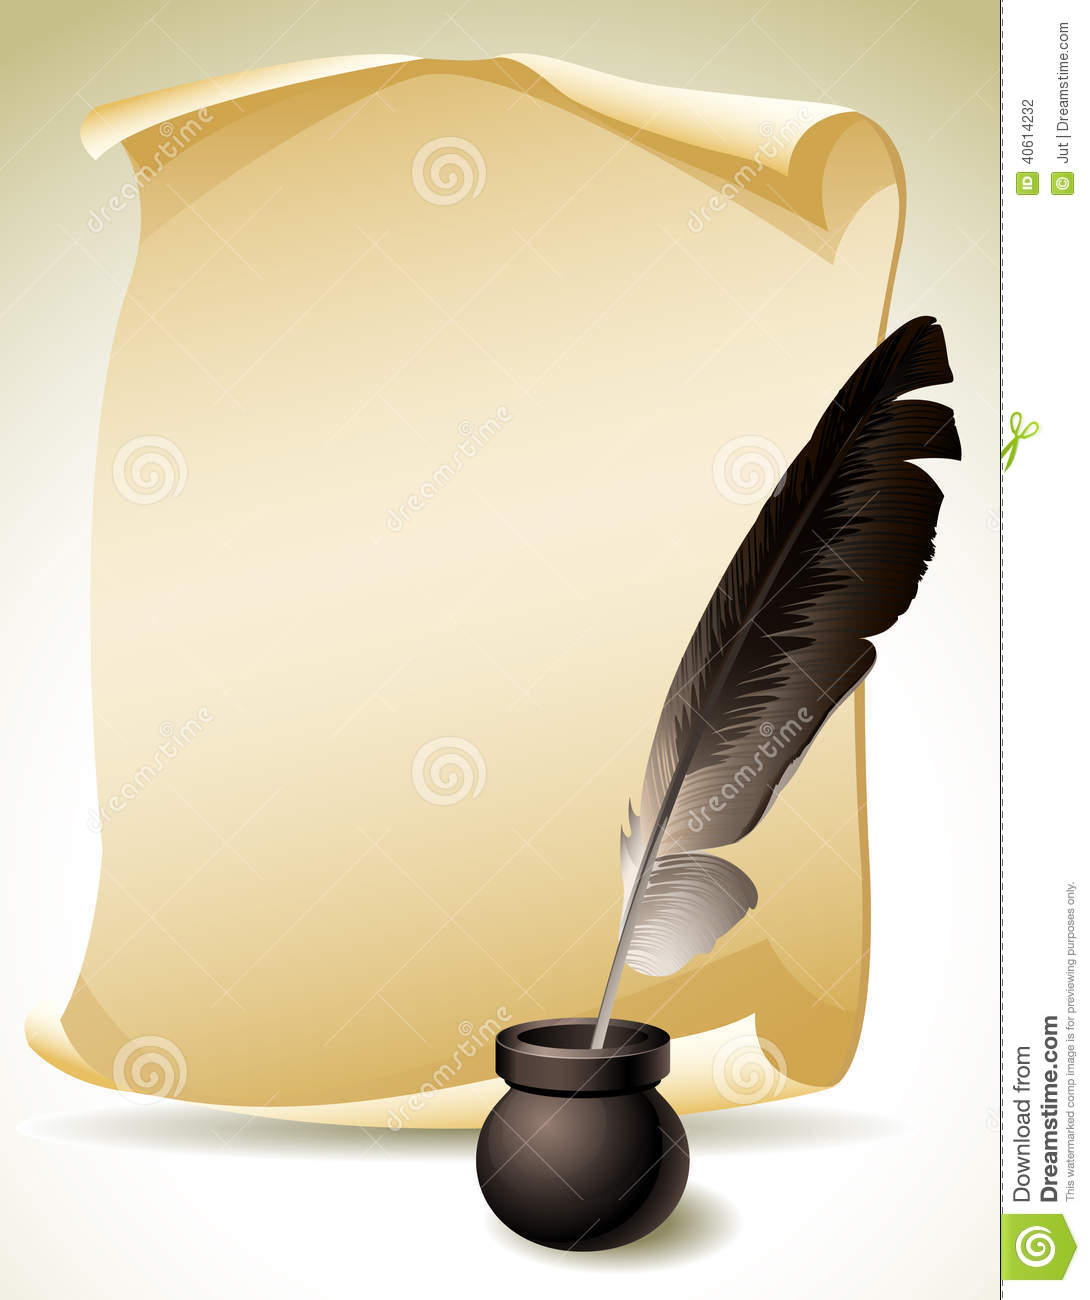 Vector illustration - Quill Pen with inkwell and paper scroll.